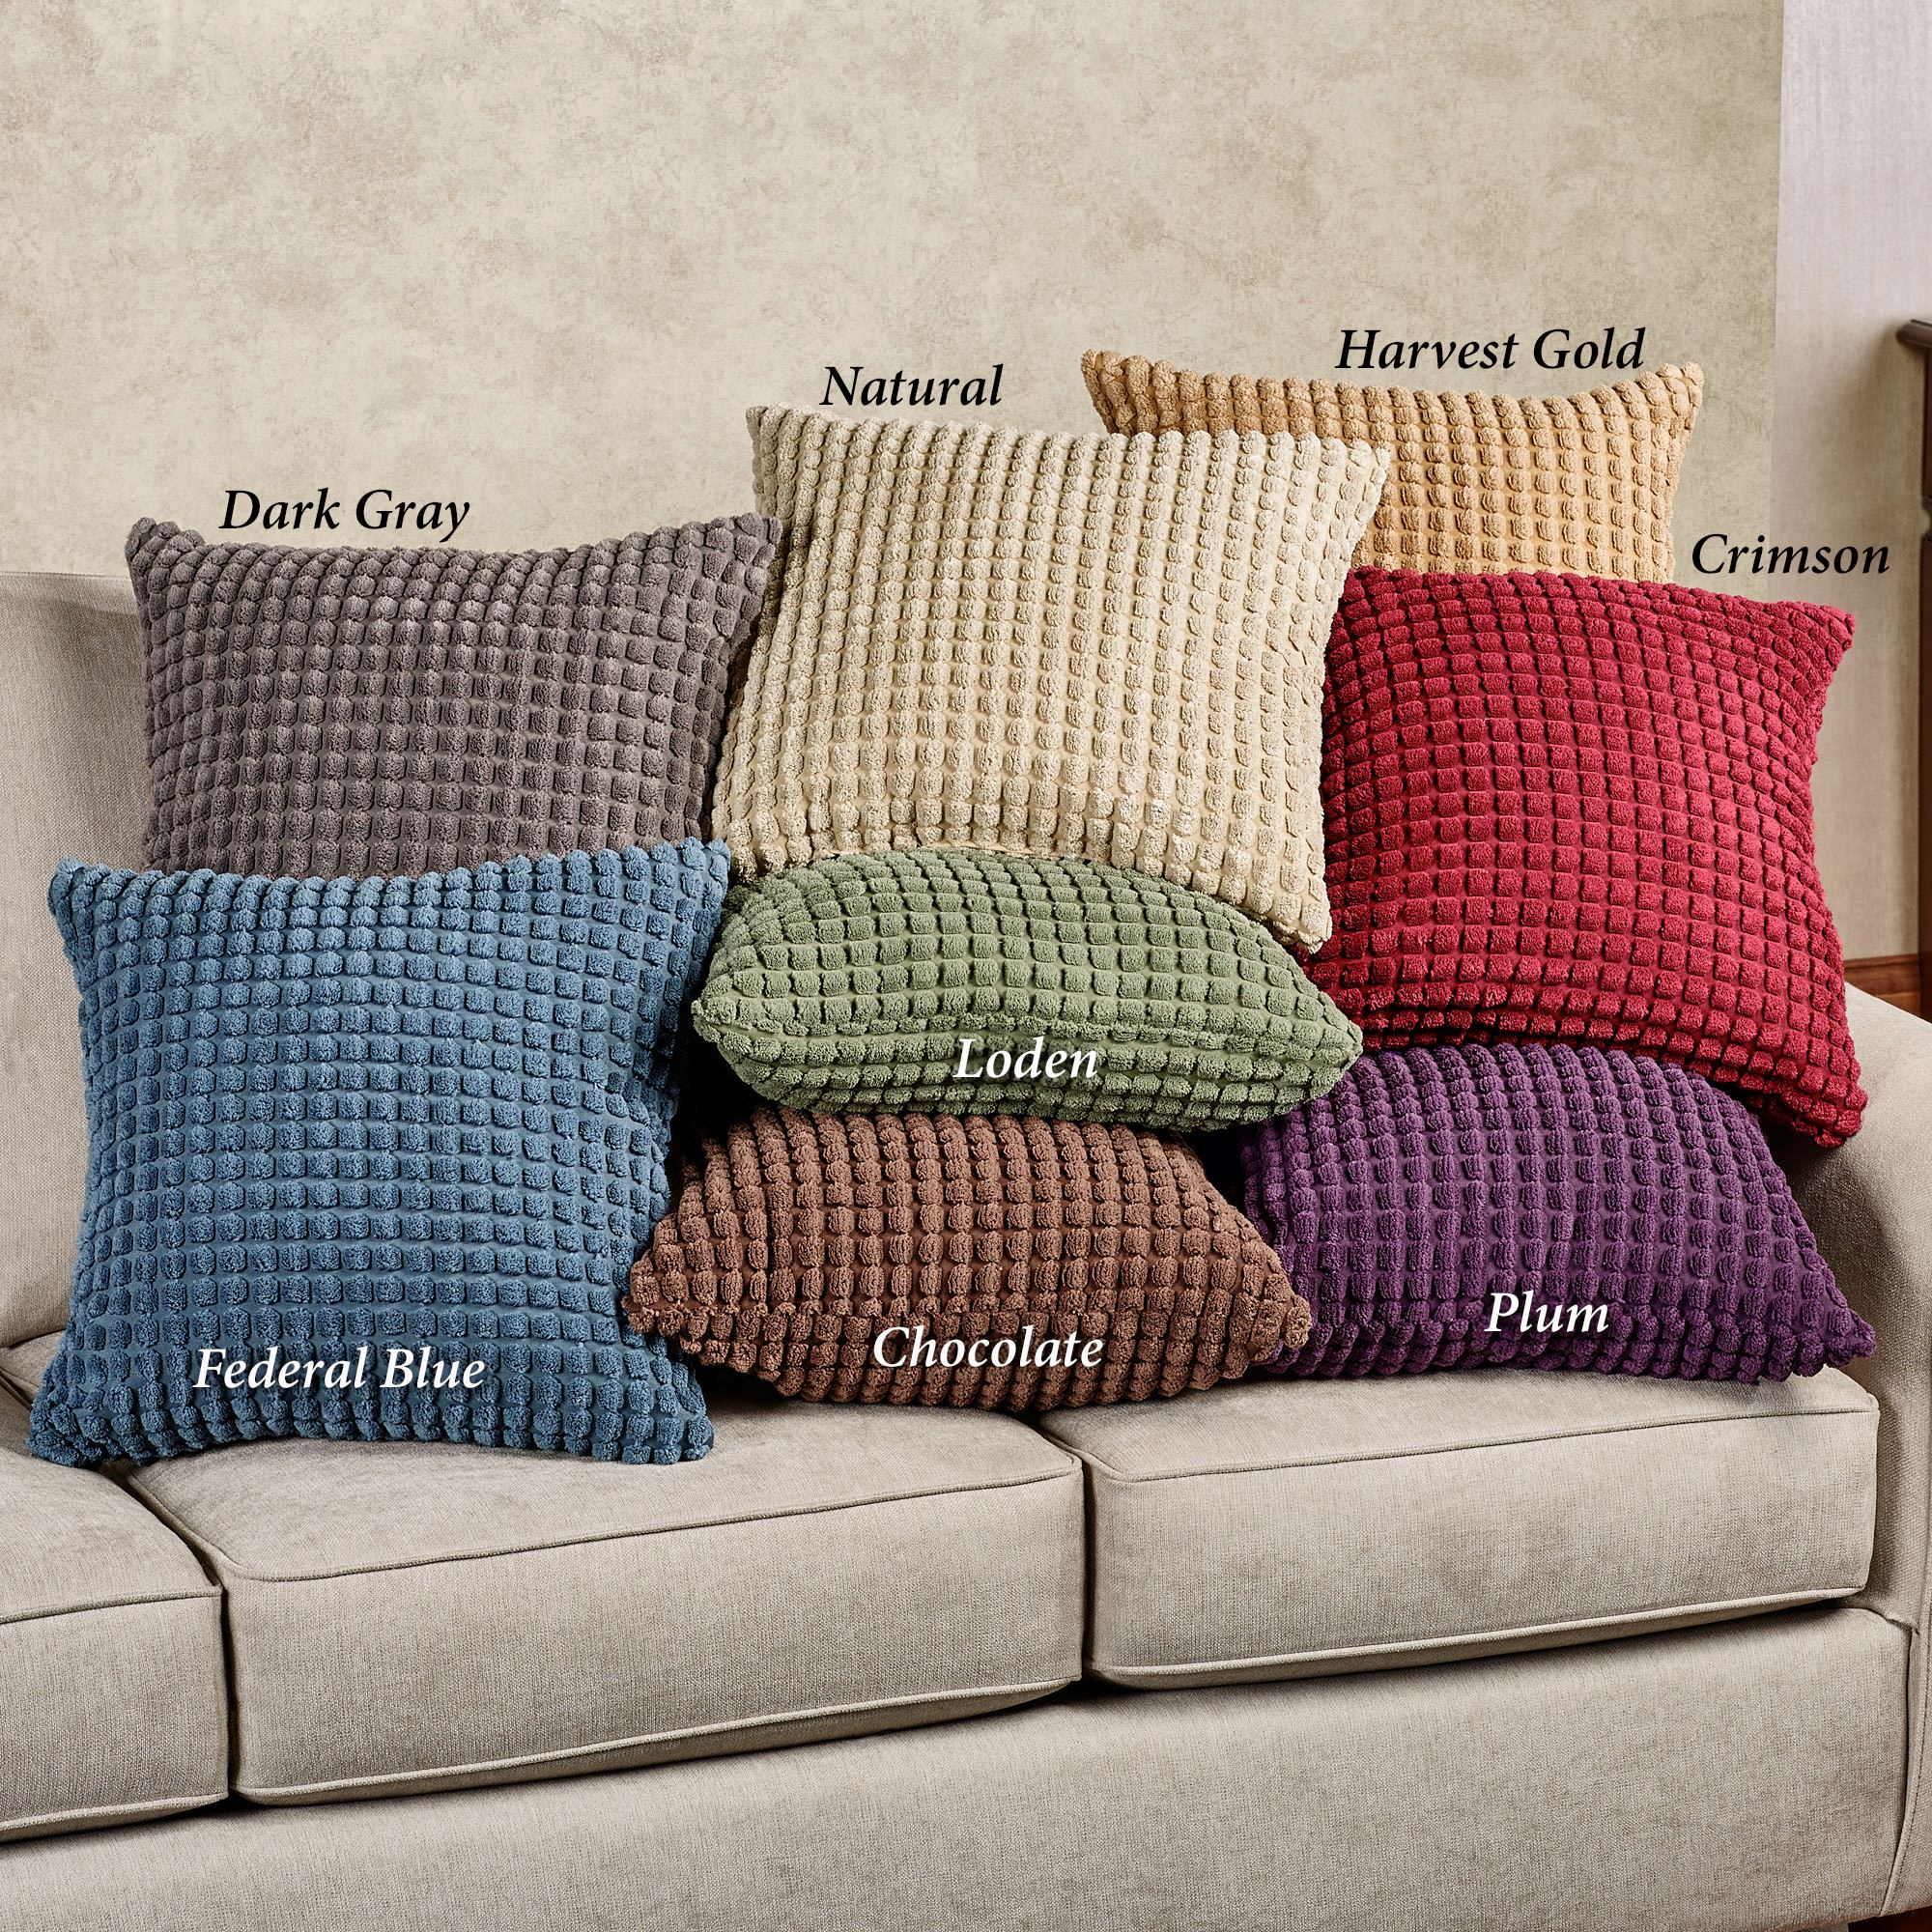 Premier Puff Solid Color Decorative Pillows